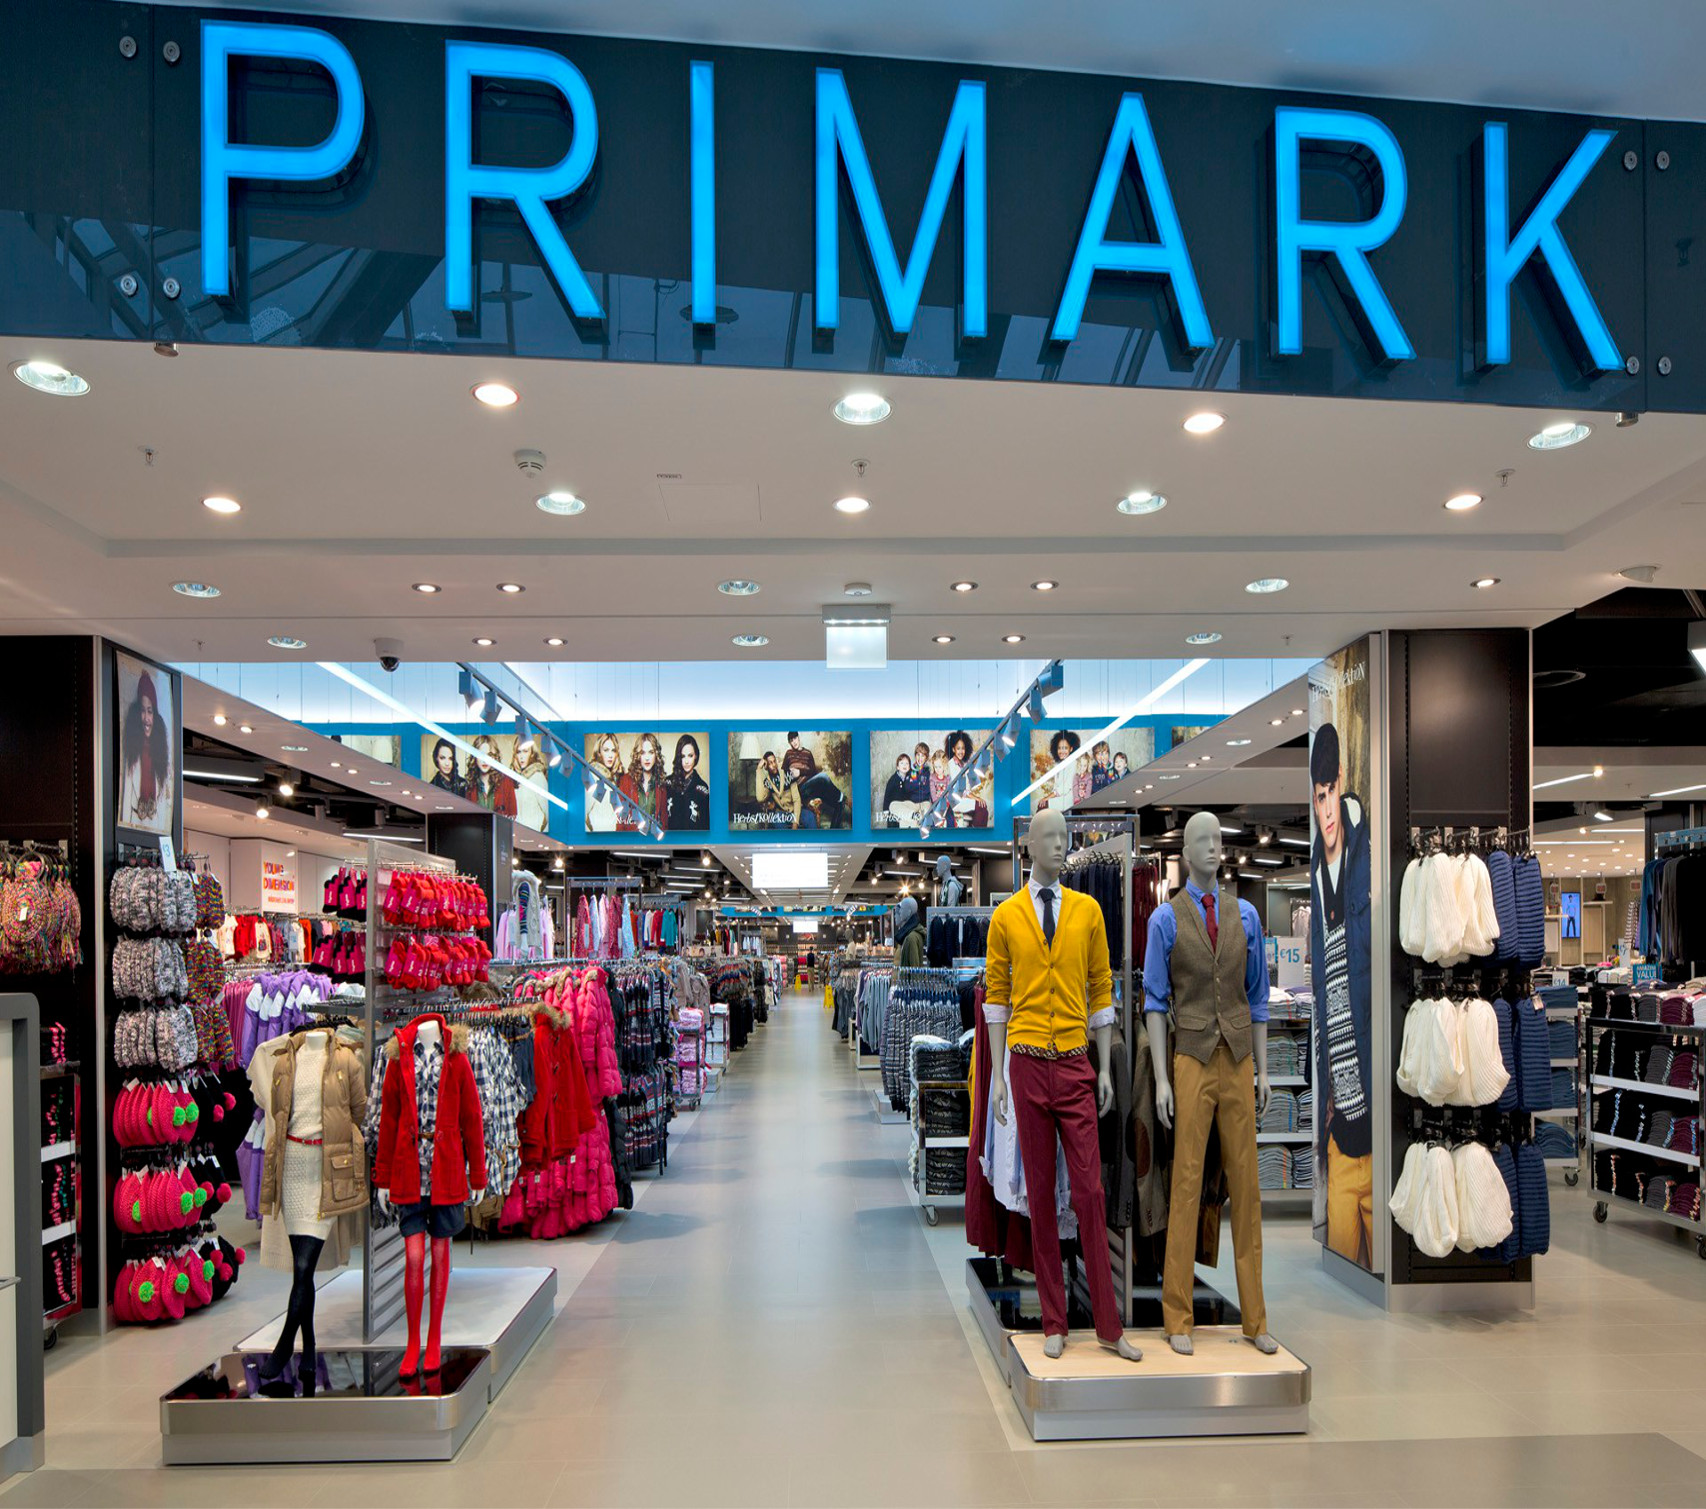 Does Primark's trade mark enjoy protection in South Africa?